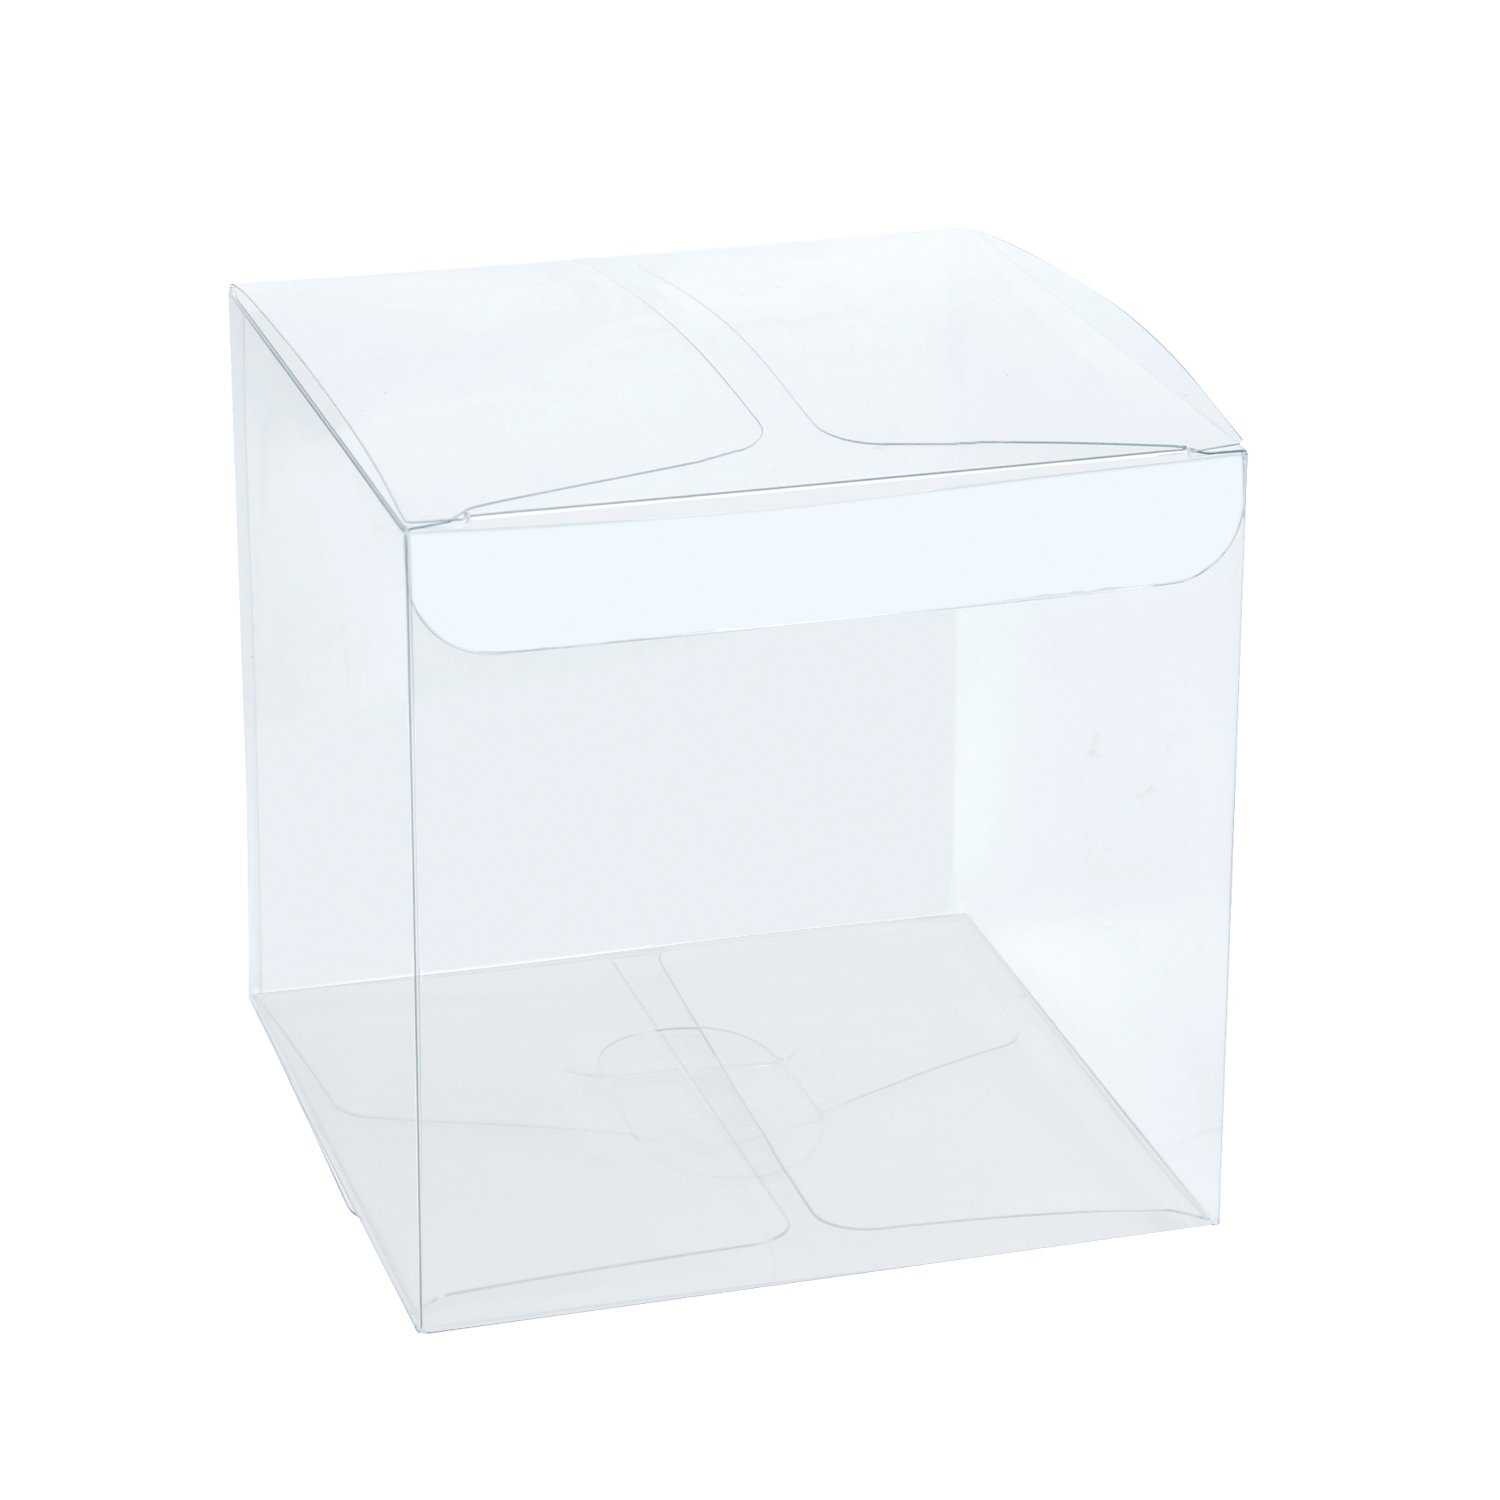 LaRibbons 50Pcs PET Clear Box, Transparent Boxes/Clear Gift Boxes for Wedding, Party and Baby Shower Favors, 3'' L x 3'' W x 3'' H